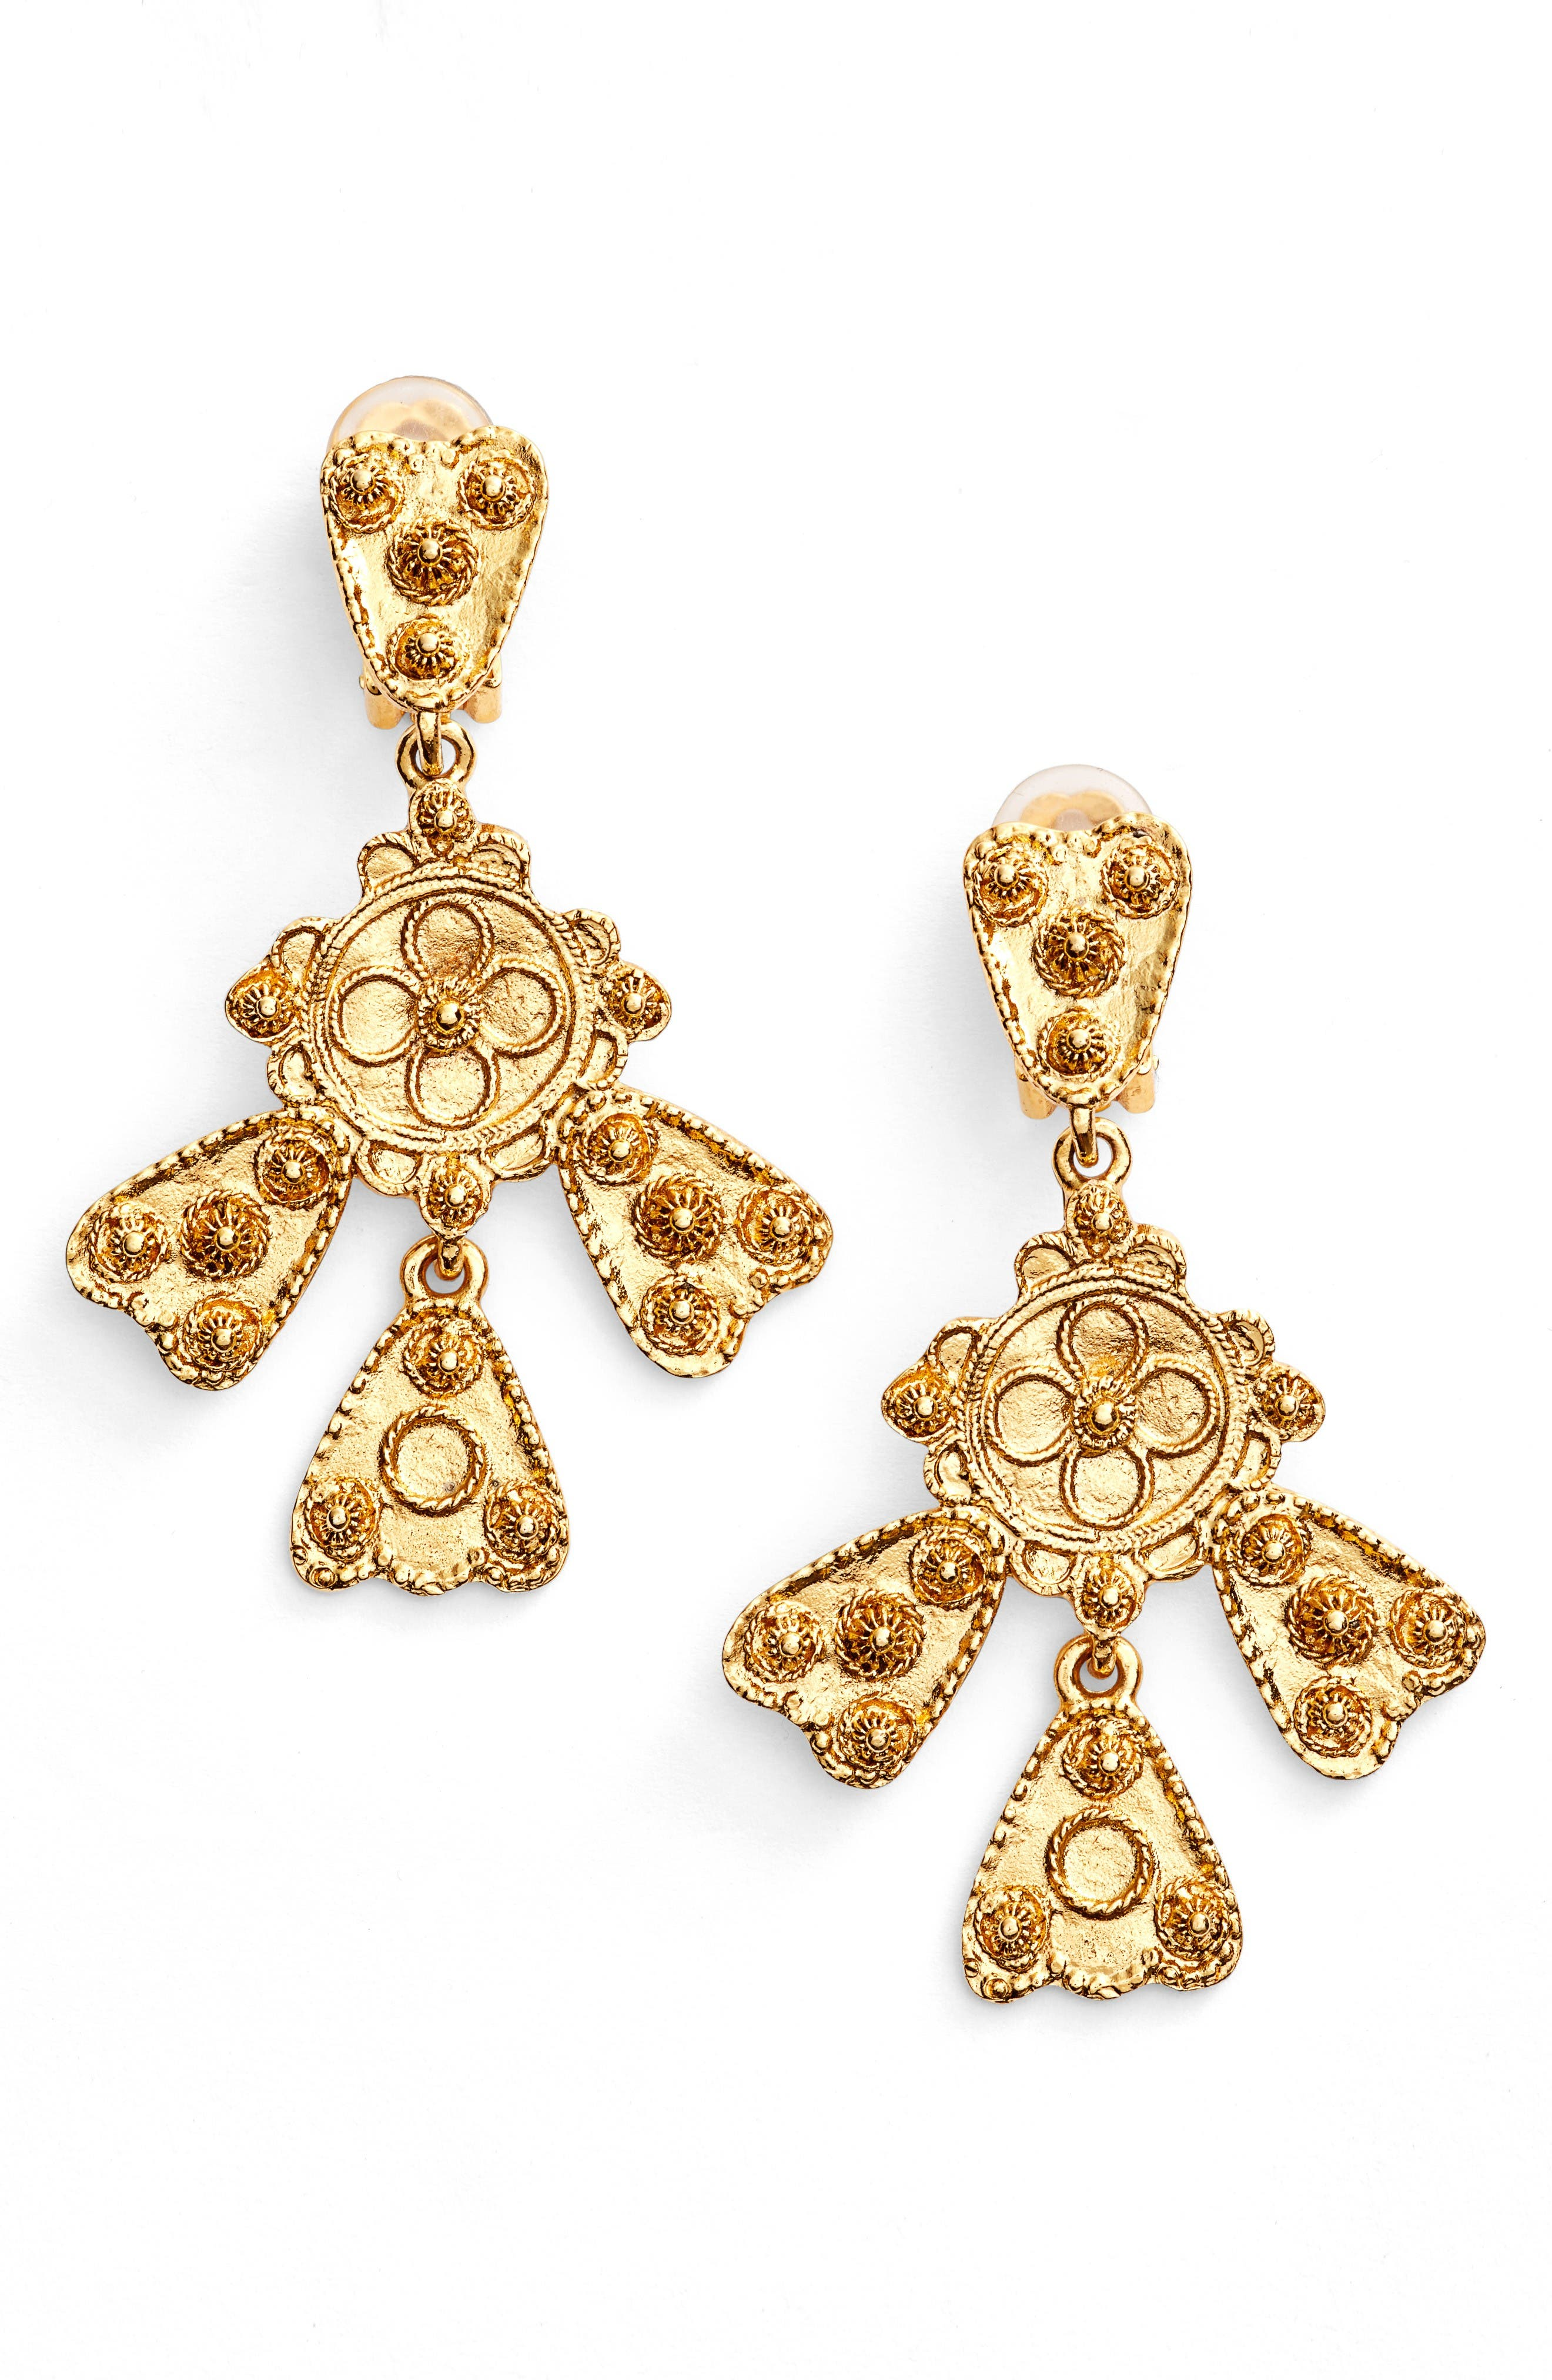 Oscar de la Renta Charm Clip Earrings